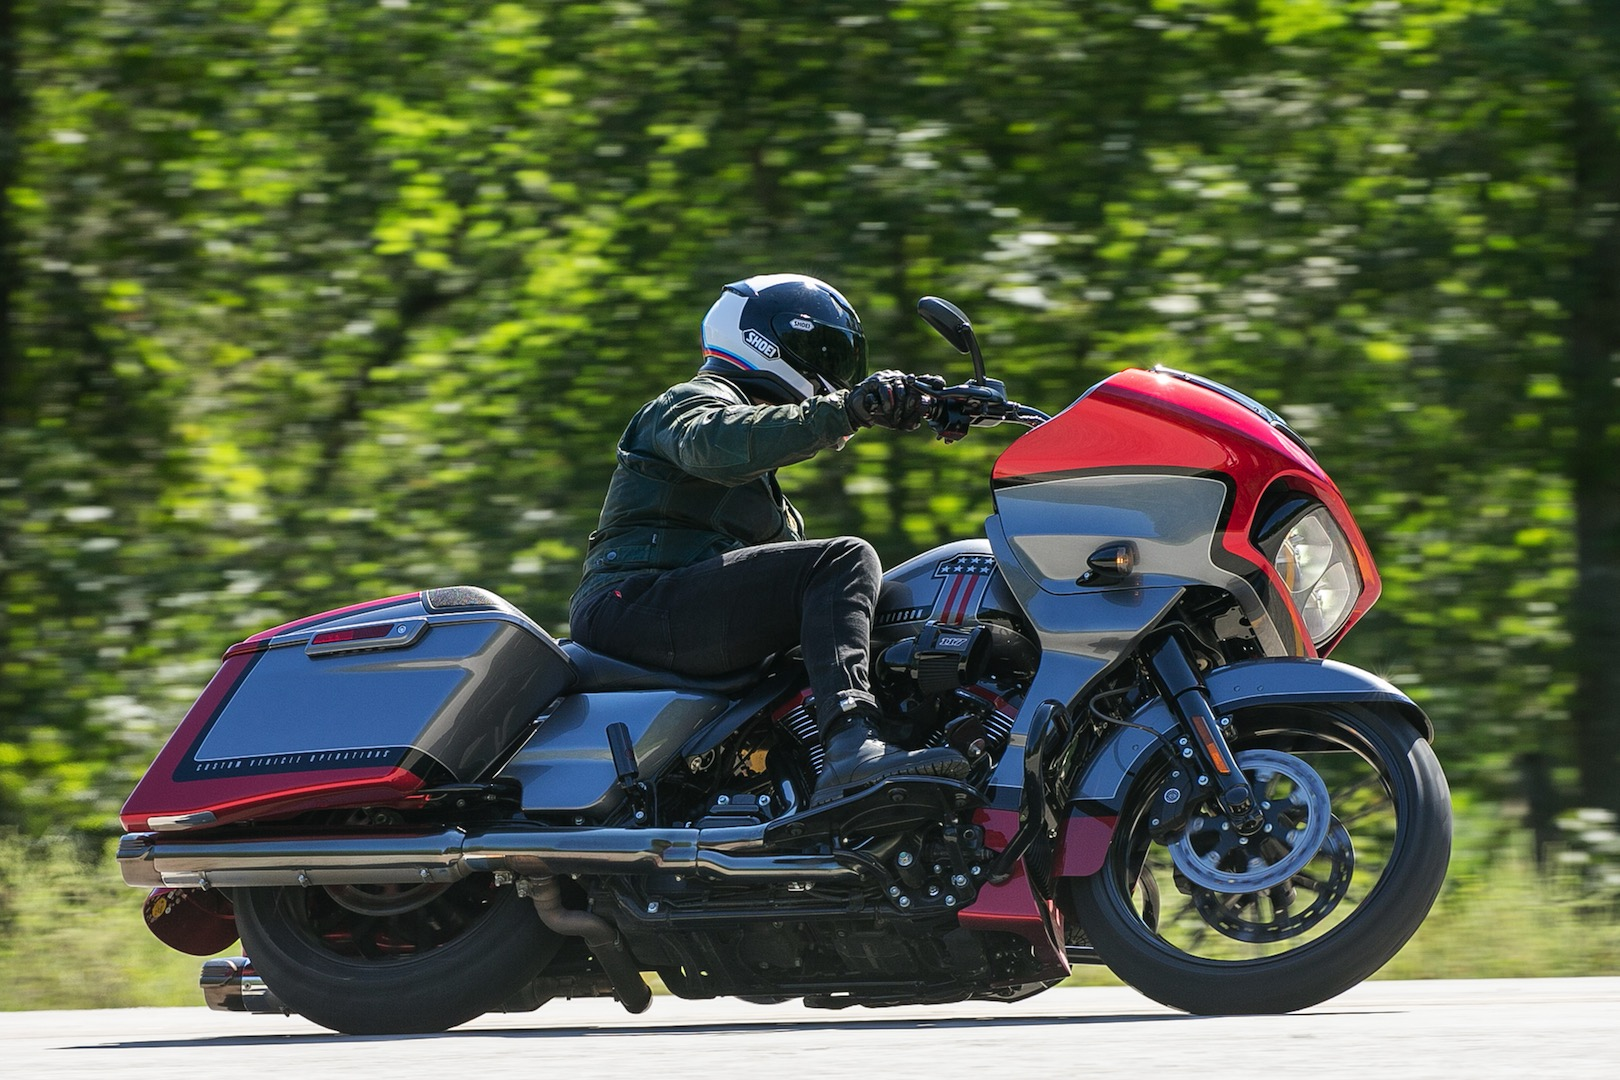 2019 Harley-Davidson CVO Road Glide Review (17 Fast Facts)